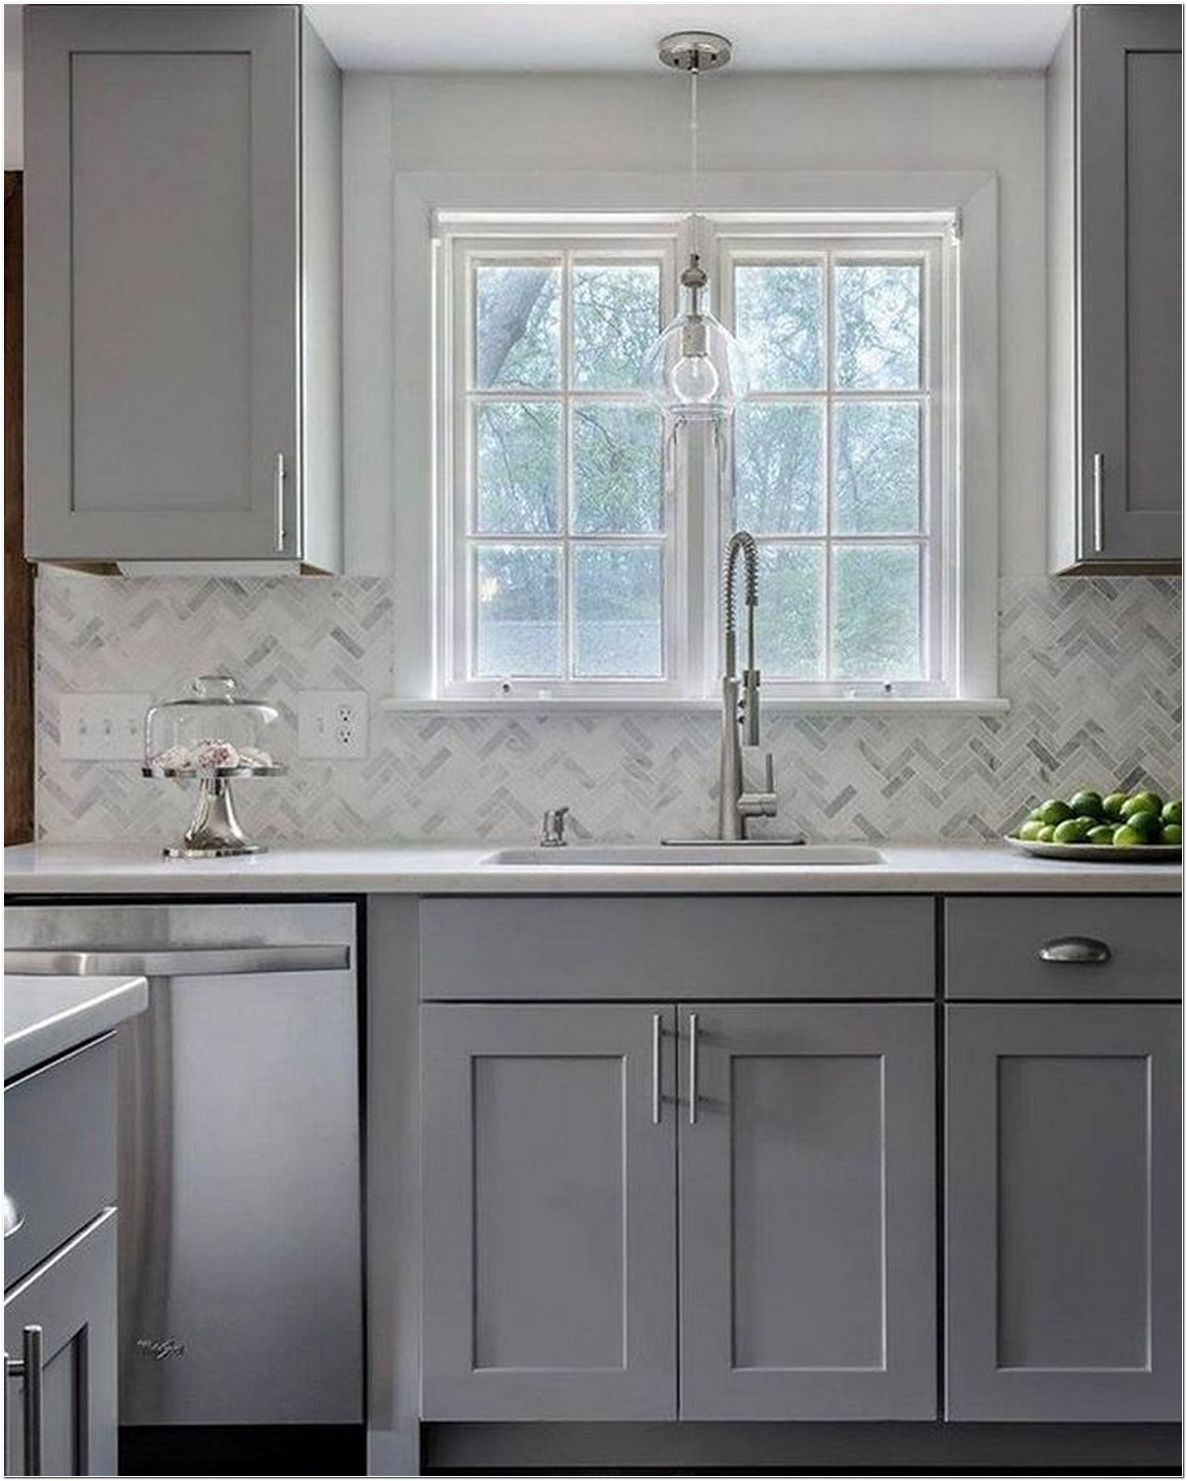 65 the battle over gray kitchen cabinets painted sherwin williams and how to win it 2 on kitchen decor grey cabinets id=96471